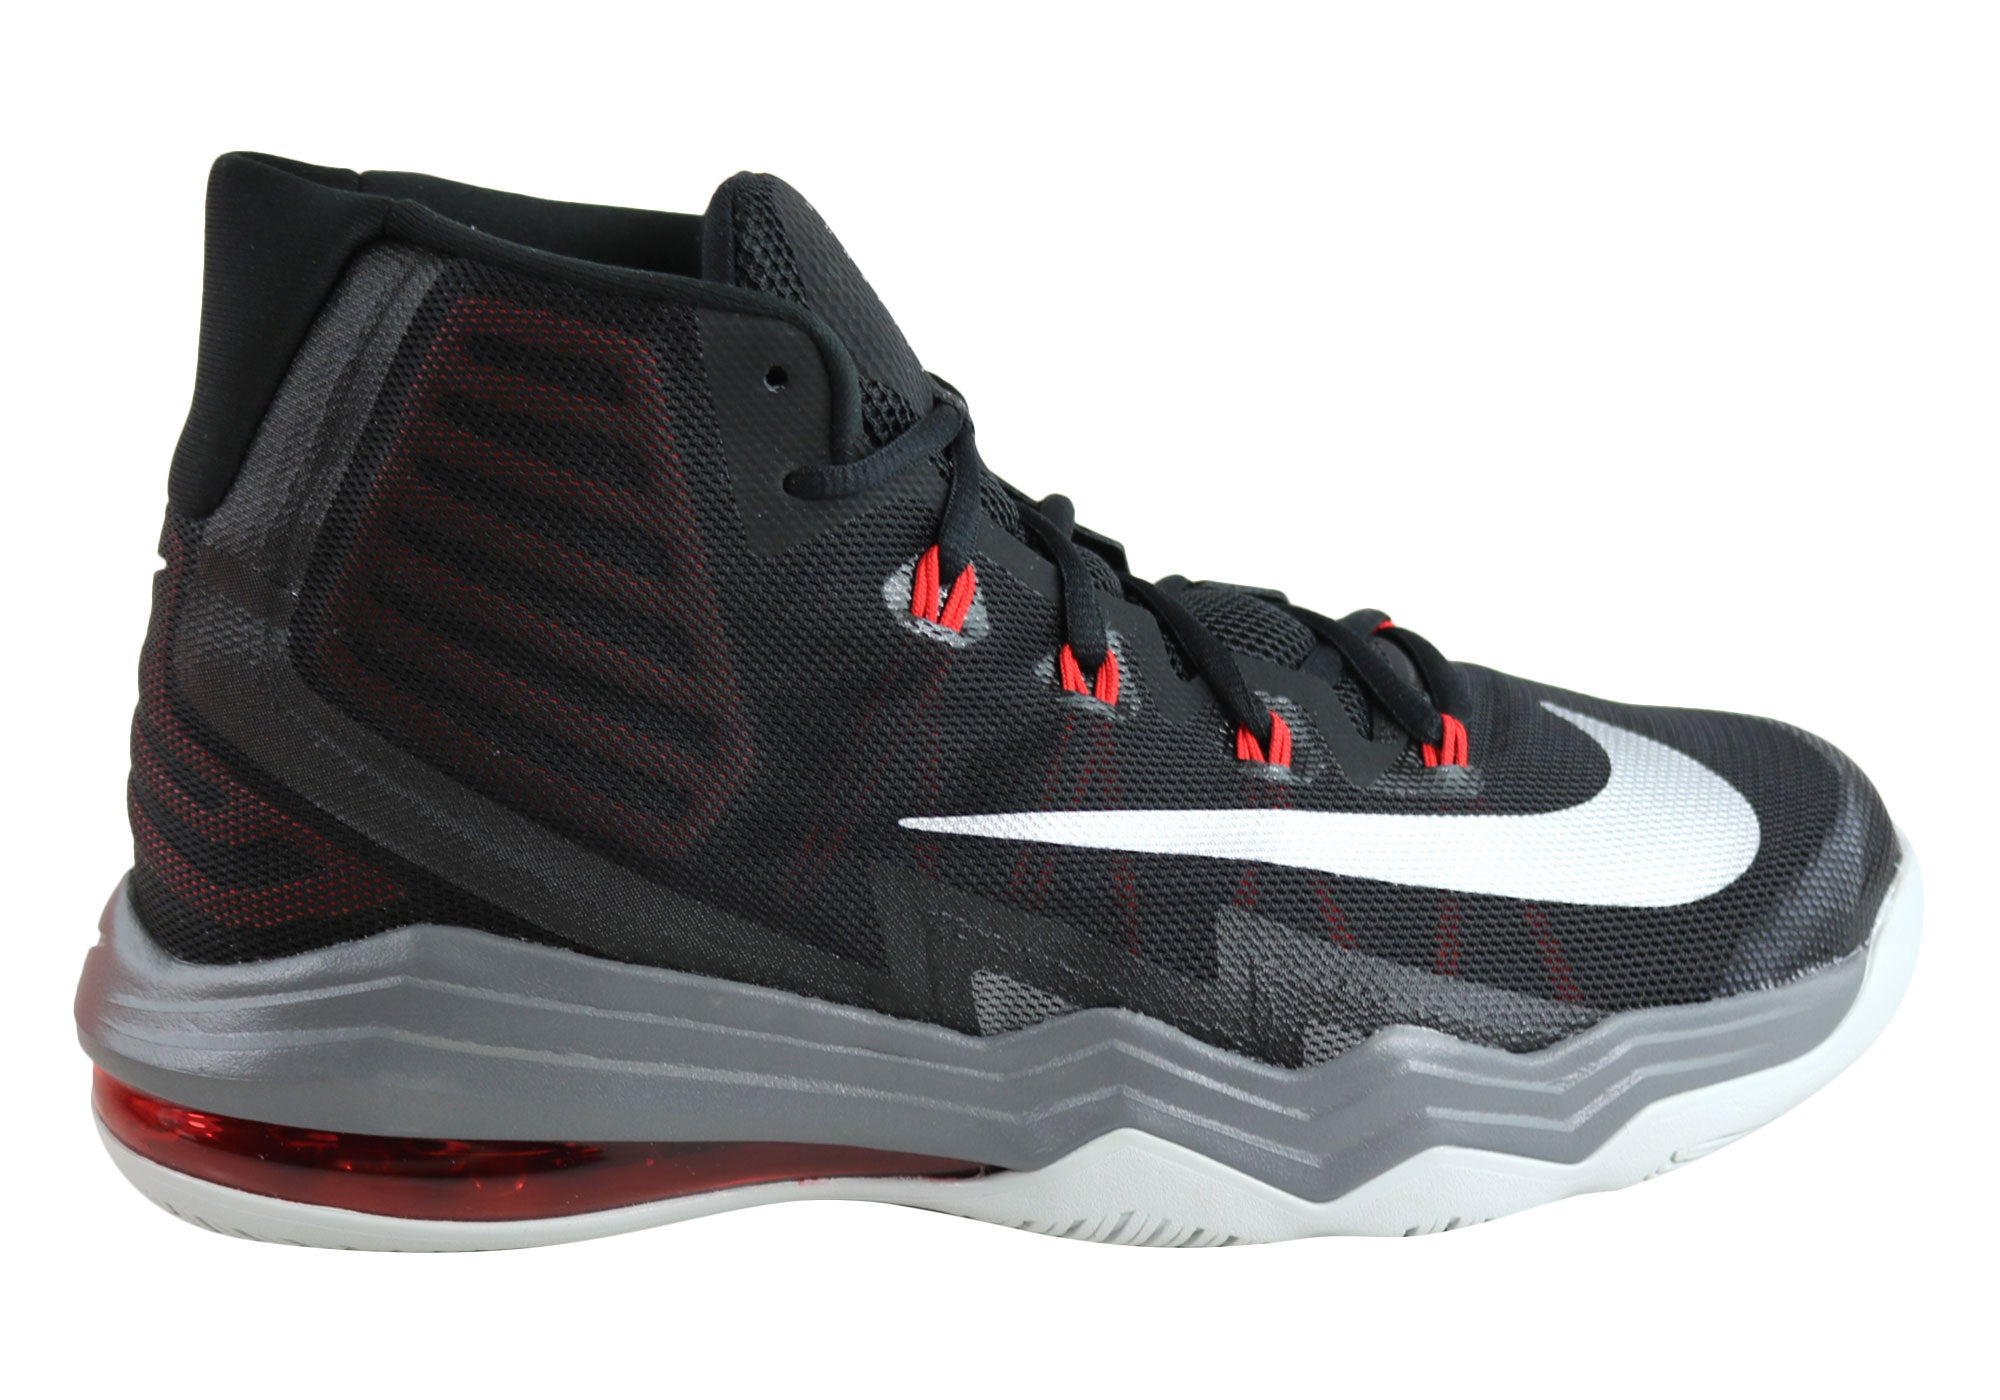 info for dac0c 01775 Details about Mens Nike Air Max Audacity 2016 Basketball Shoes - ModeShoesAU